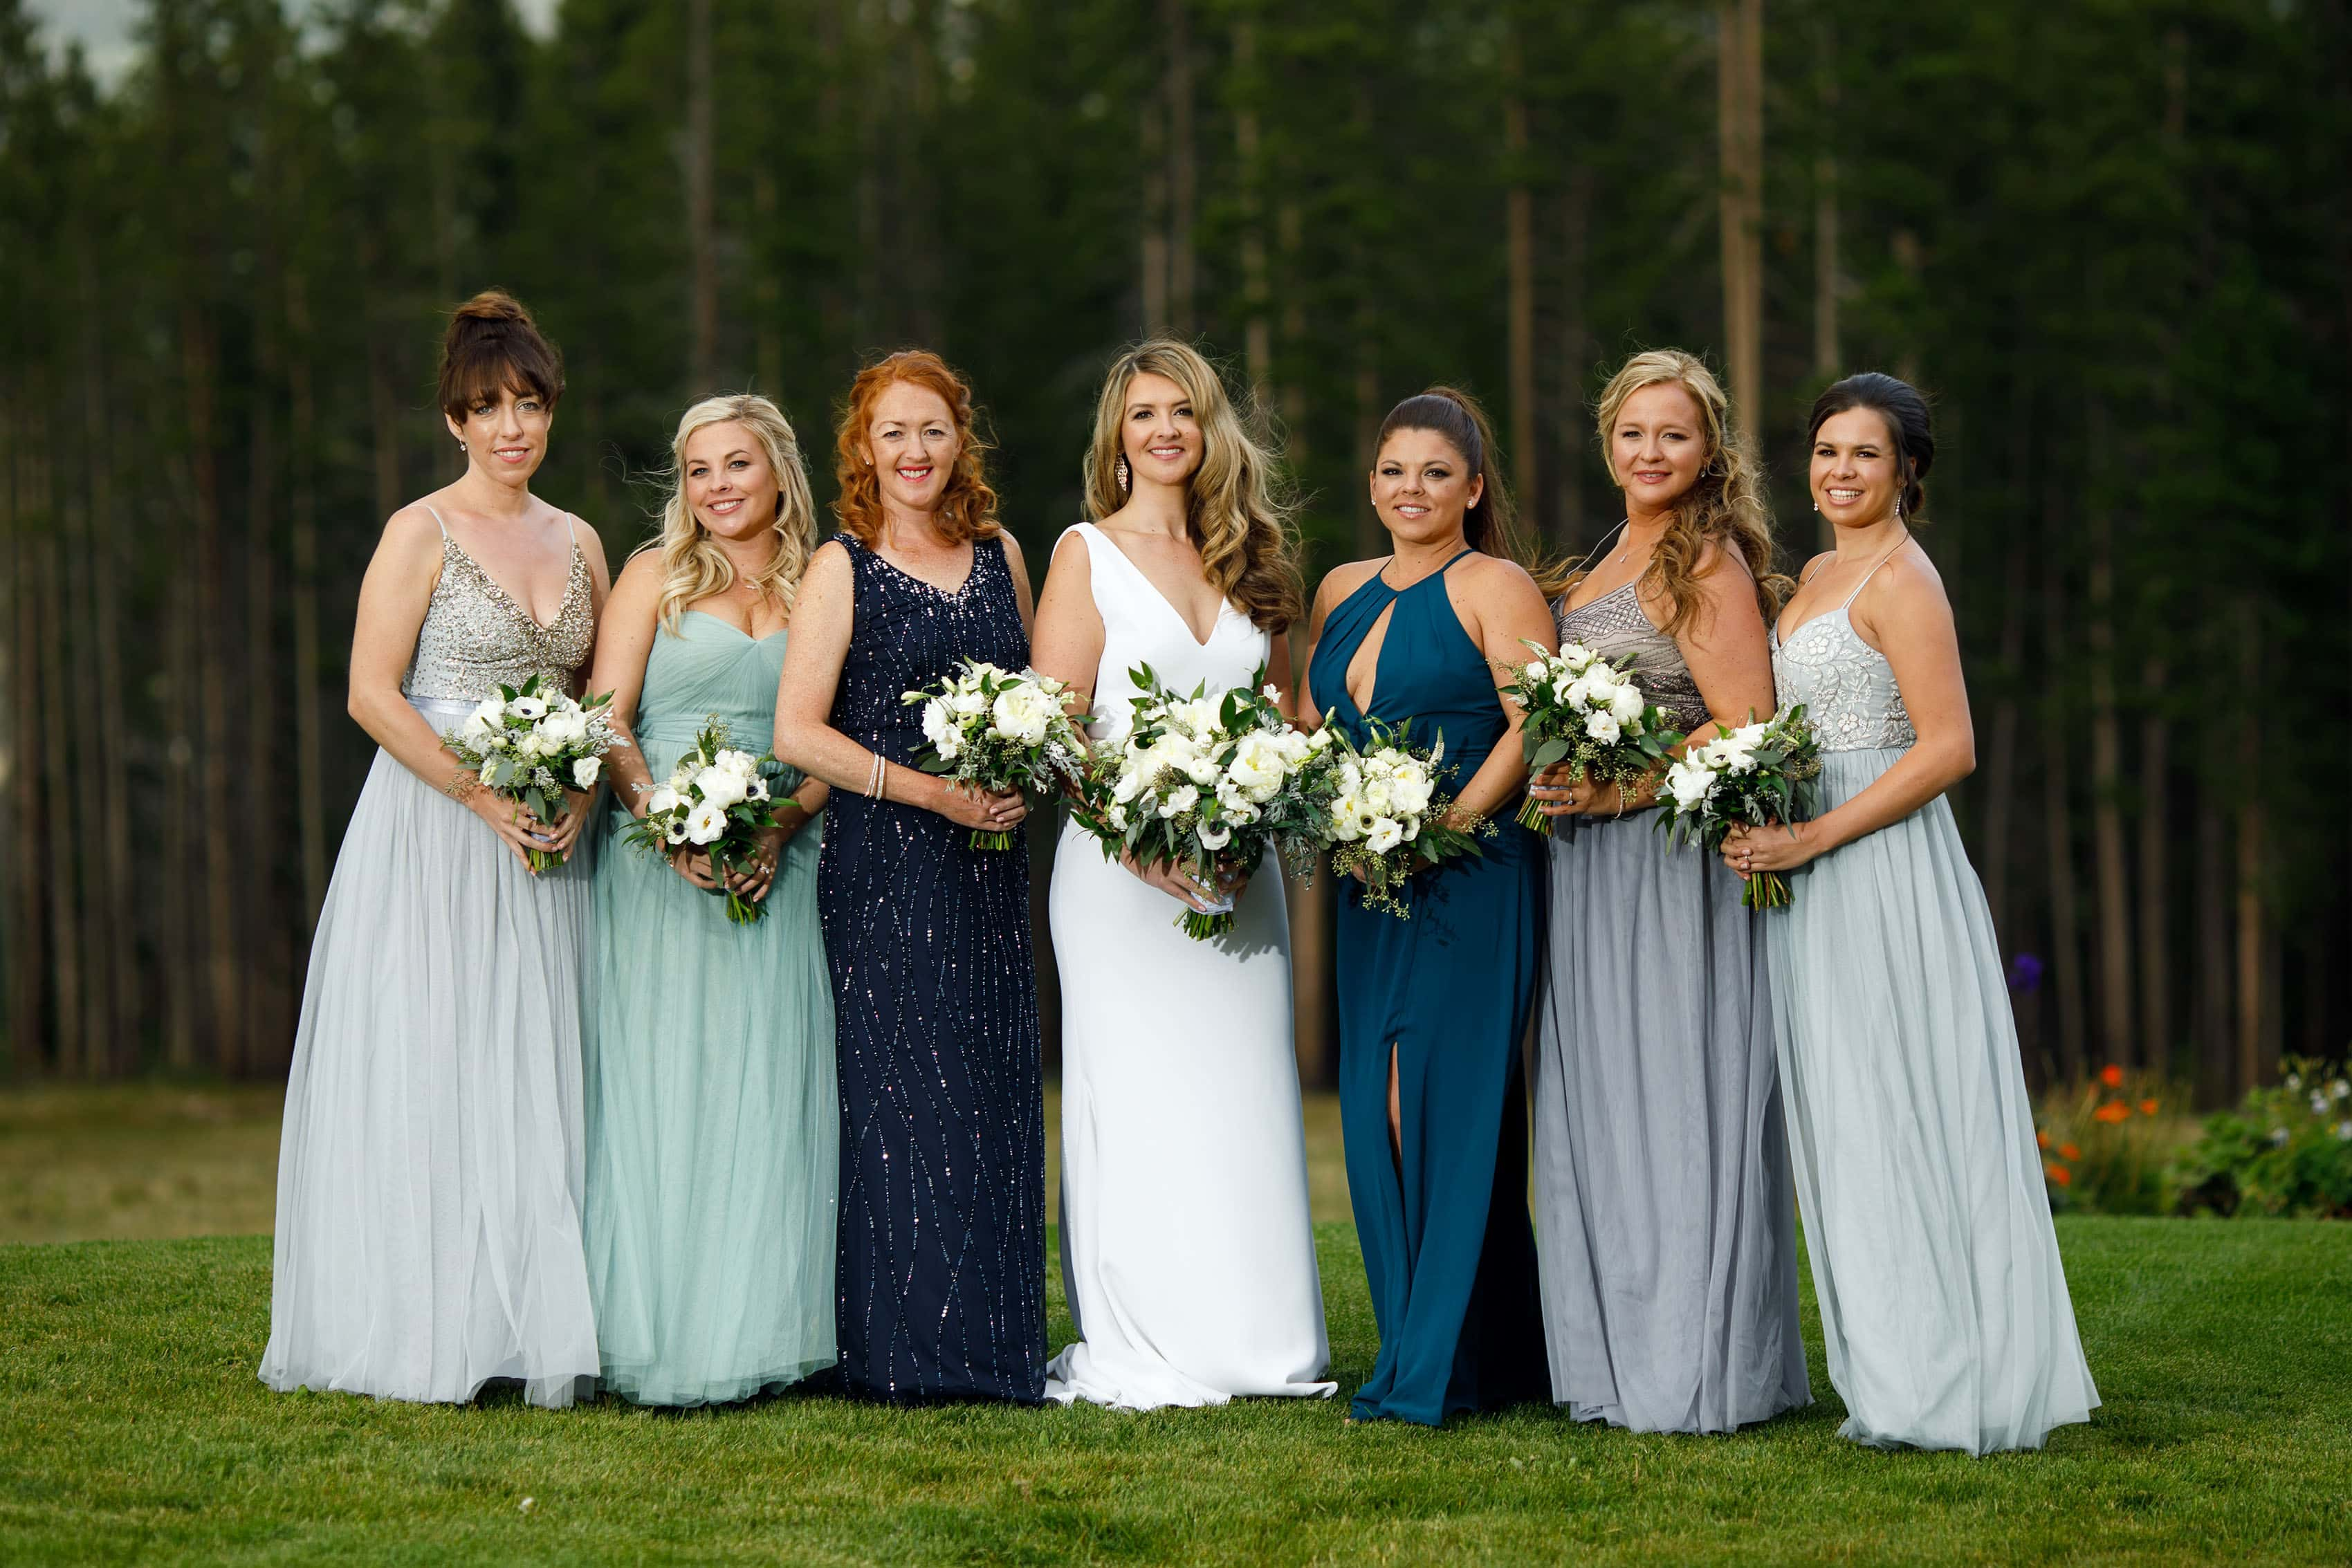 Bride and bridesmaids at TenMile Station